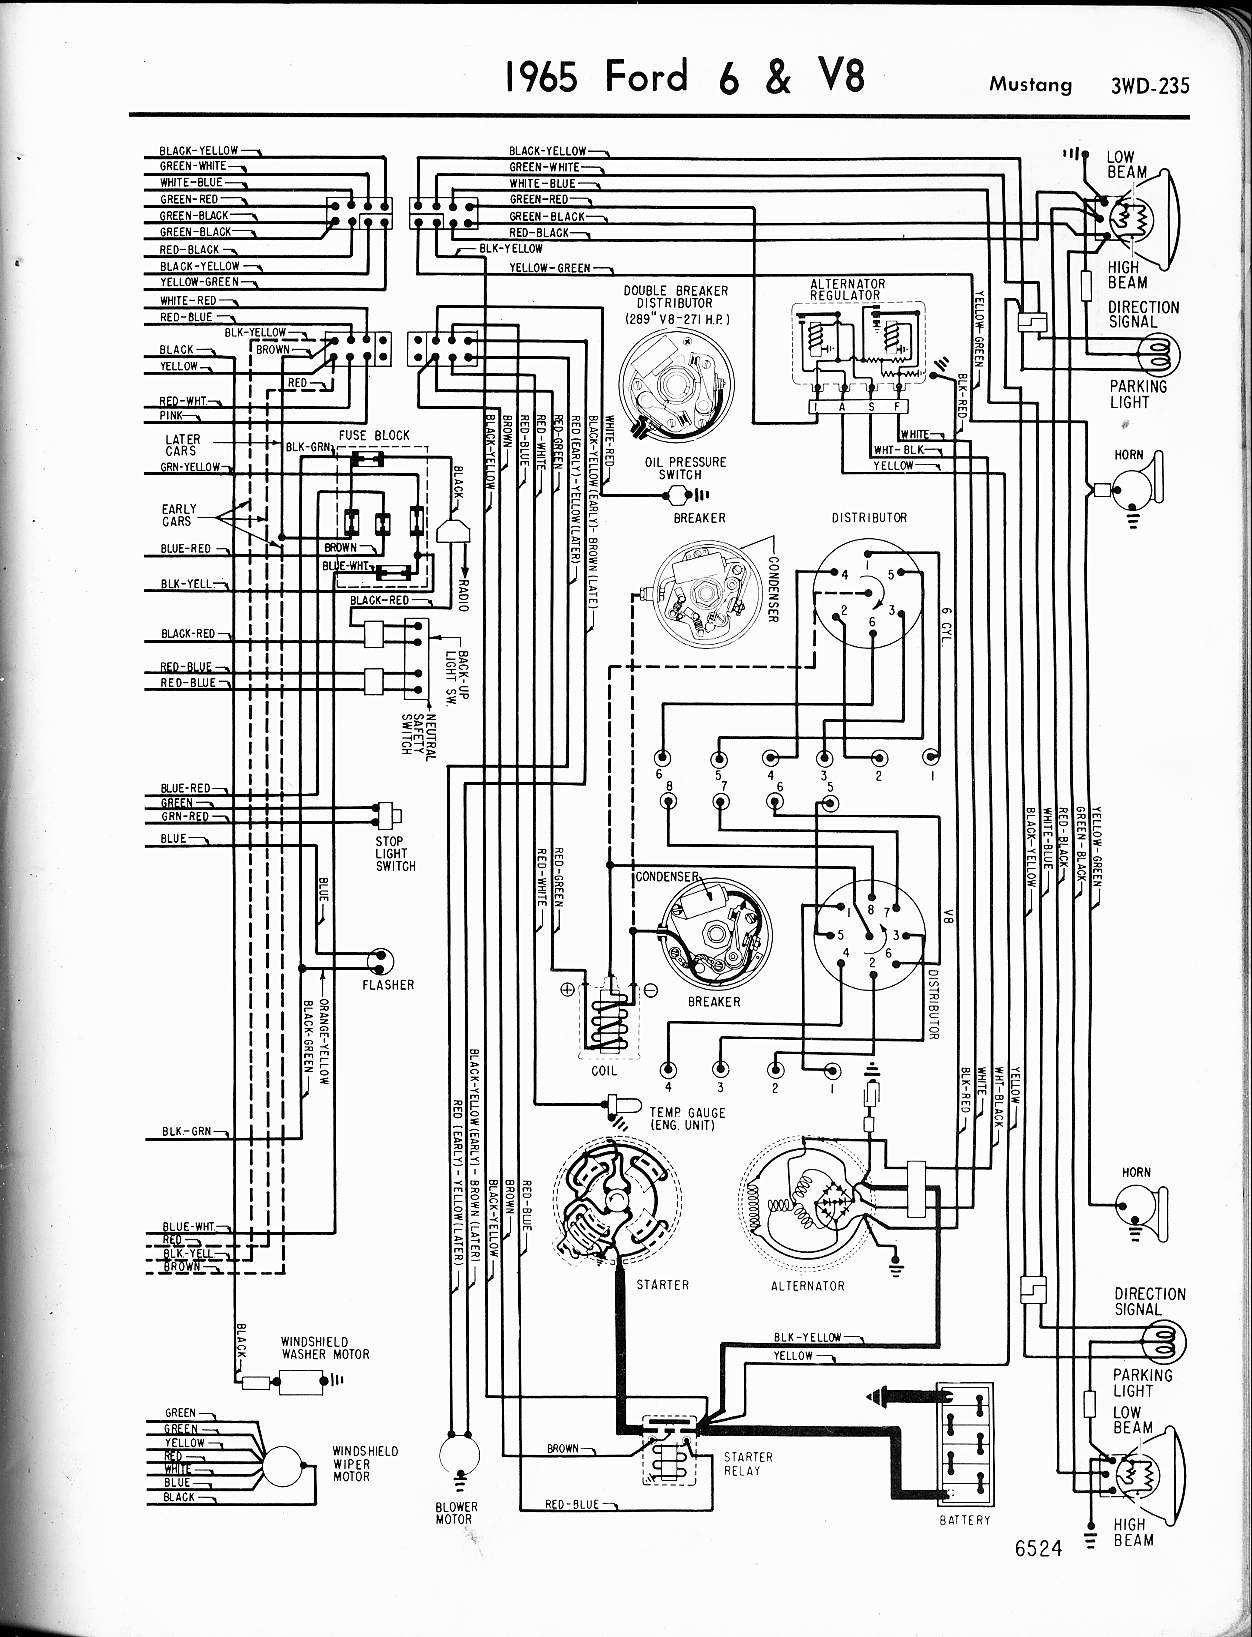 1987 Ford F600 Wiring Diagram Manual Of 88 1989 Mustang Turn Signal Detailed Schematics Rh Jvpacks Com